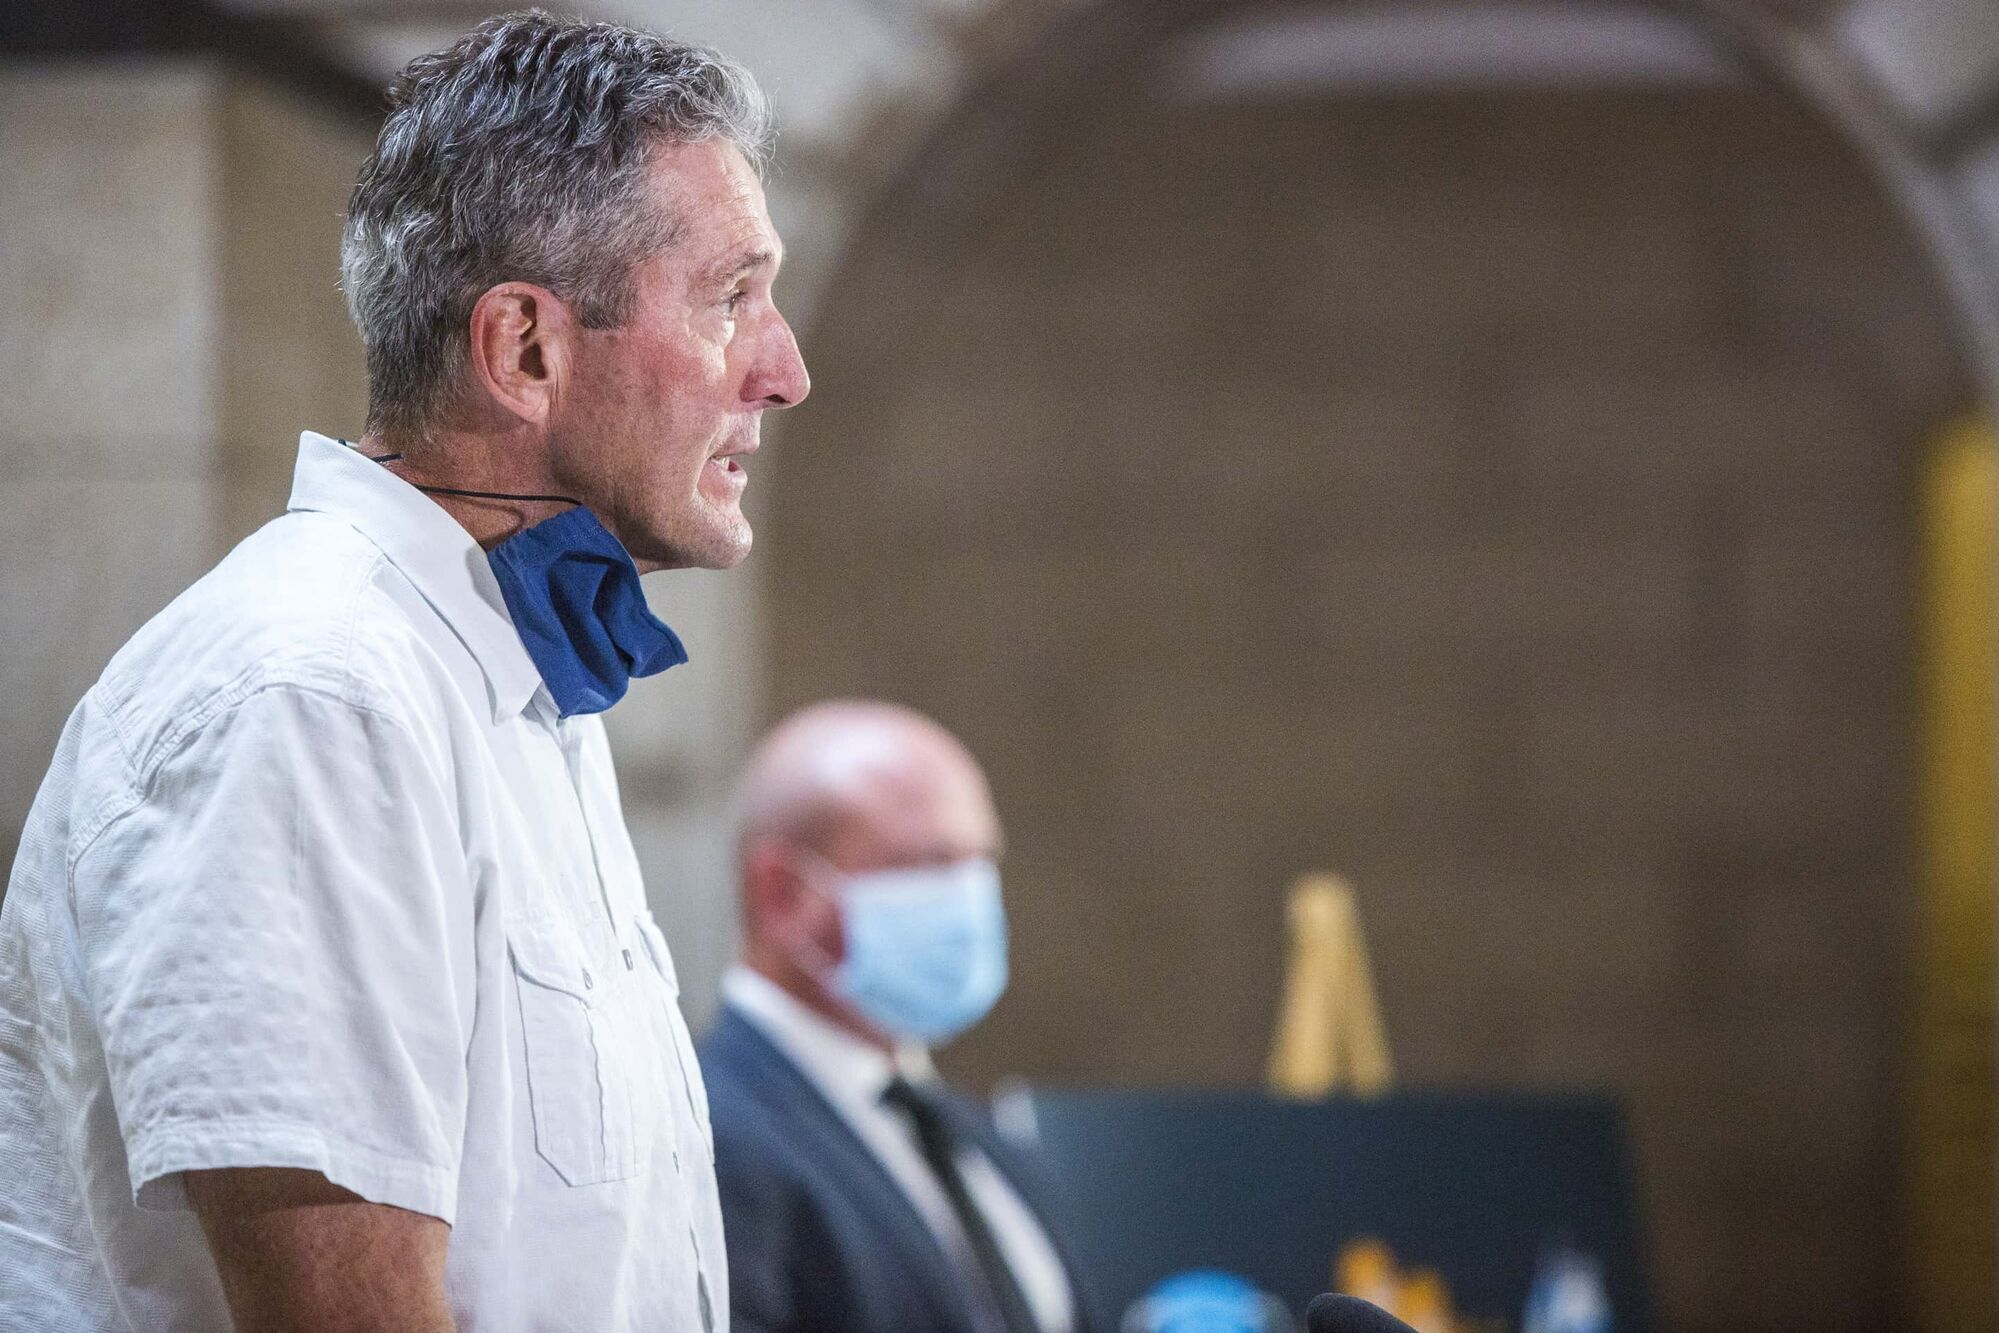 Premier Brian Pallister (front) and chief provincial public health officer Dr. Brent Roussin. (Mikaela MacKenzie / Winnipeg Free Press files)